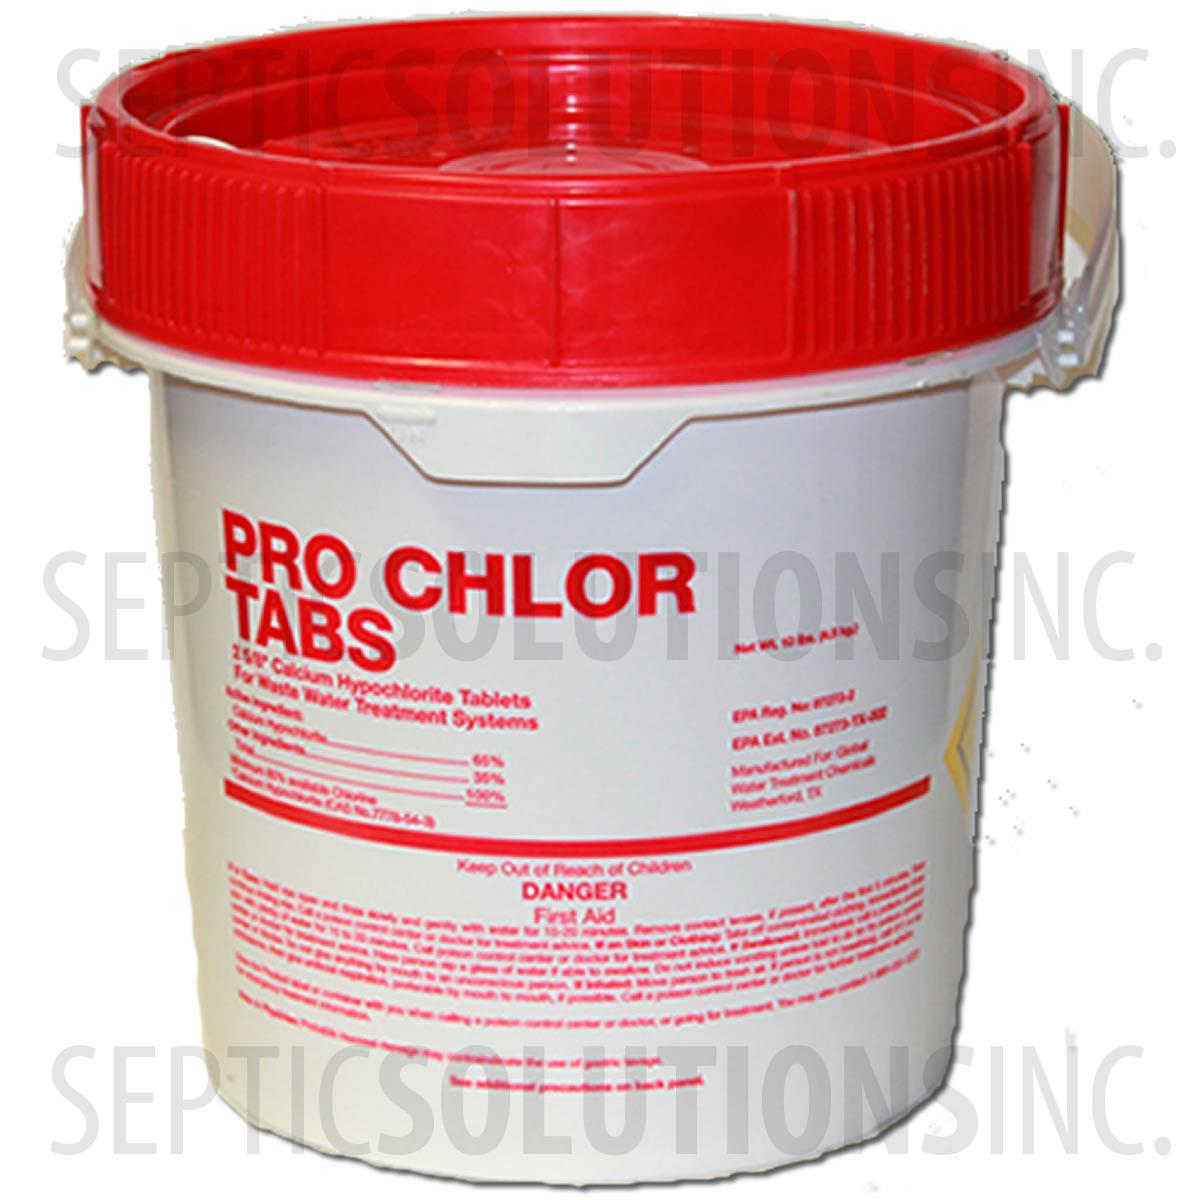 Pro Chlor 5lb Pail Of Septic Chlorine Tablets 47005